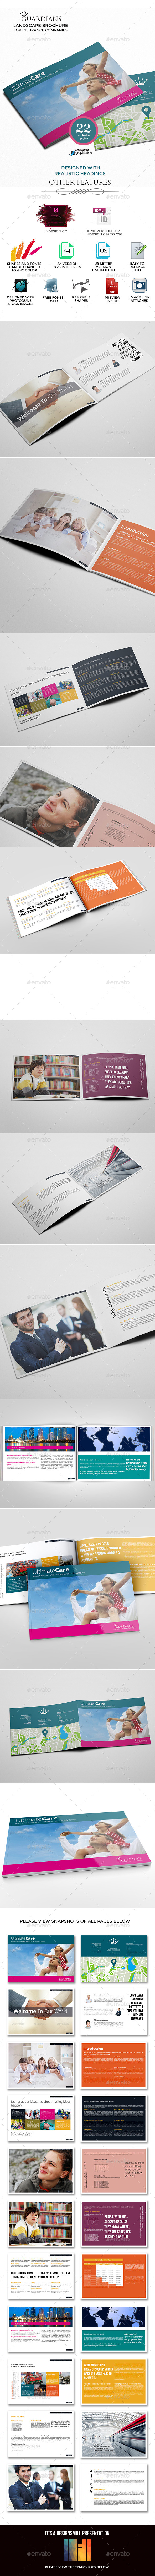 Landscape Brochure for Insurance Companies - Corporate Brochures